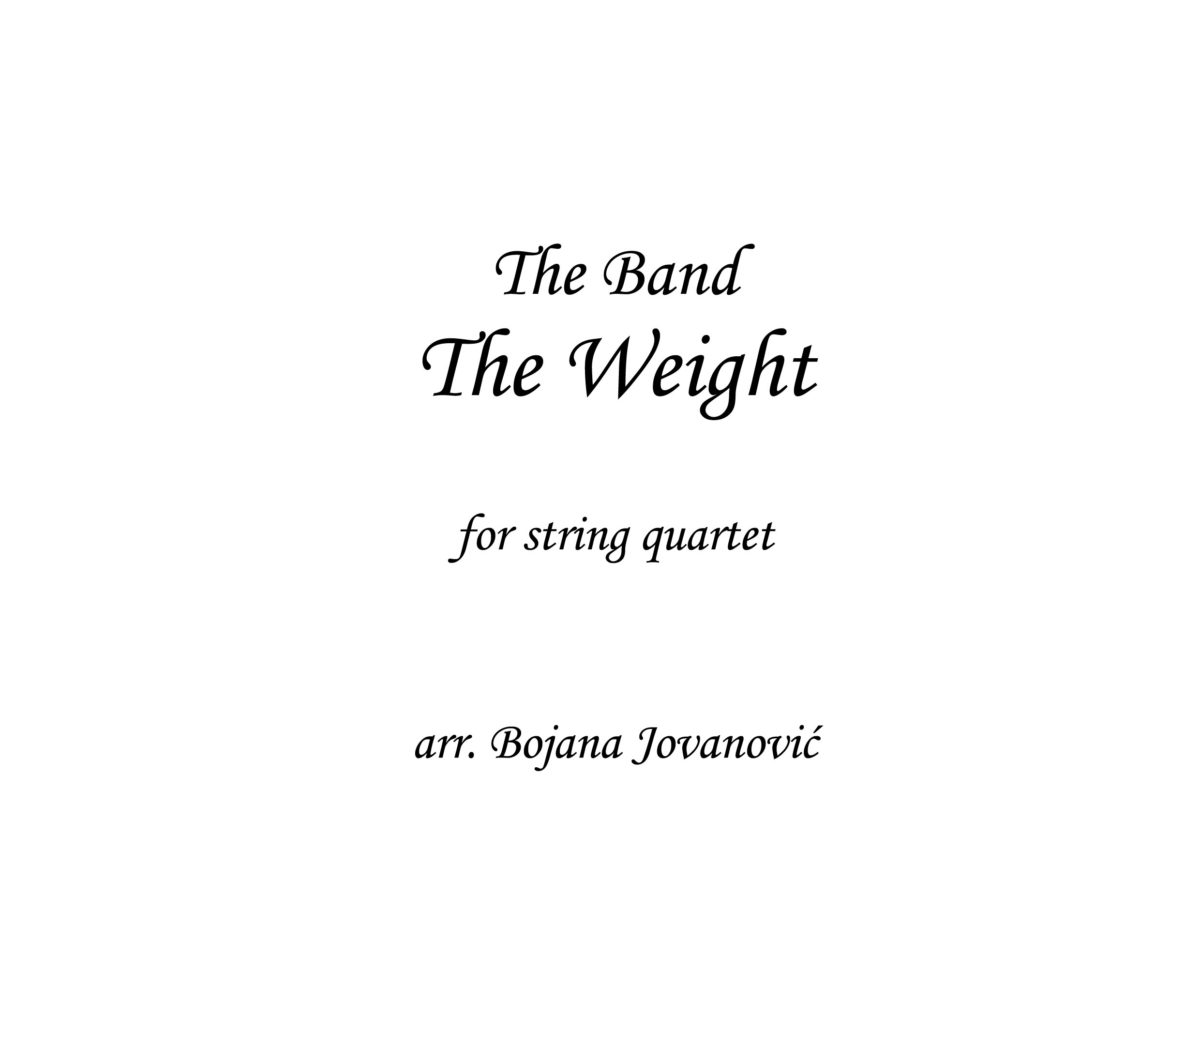 The Weight The Band Sheet music